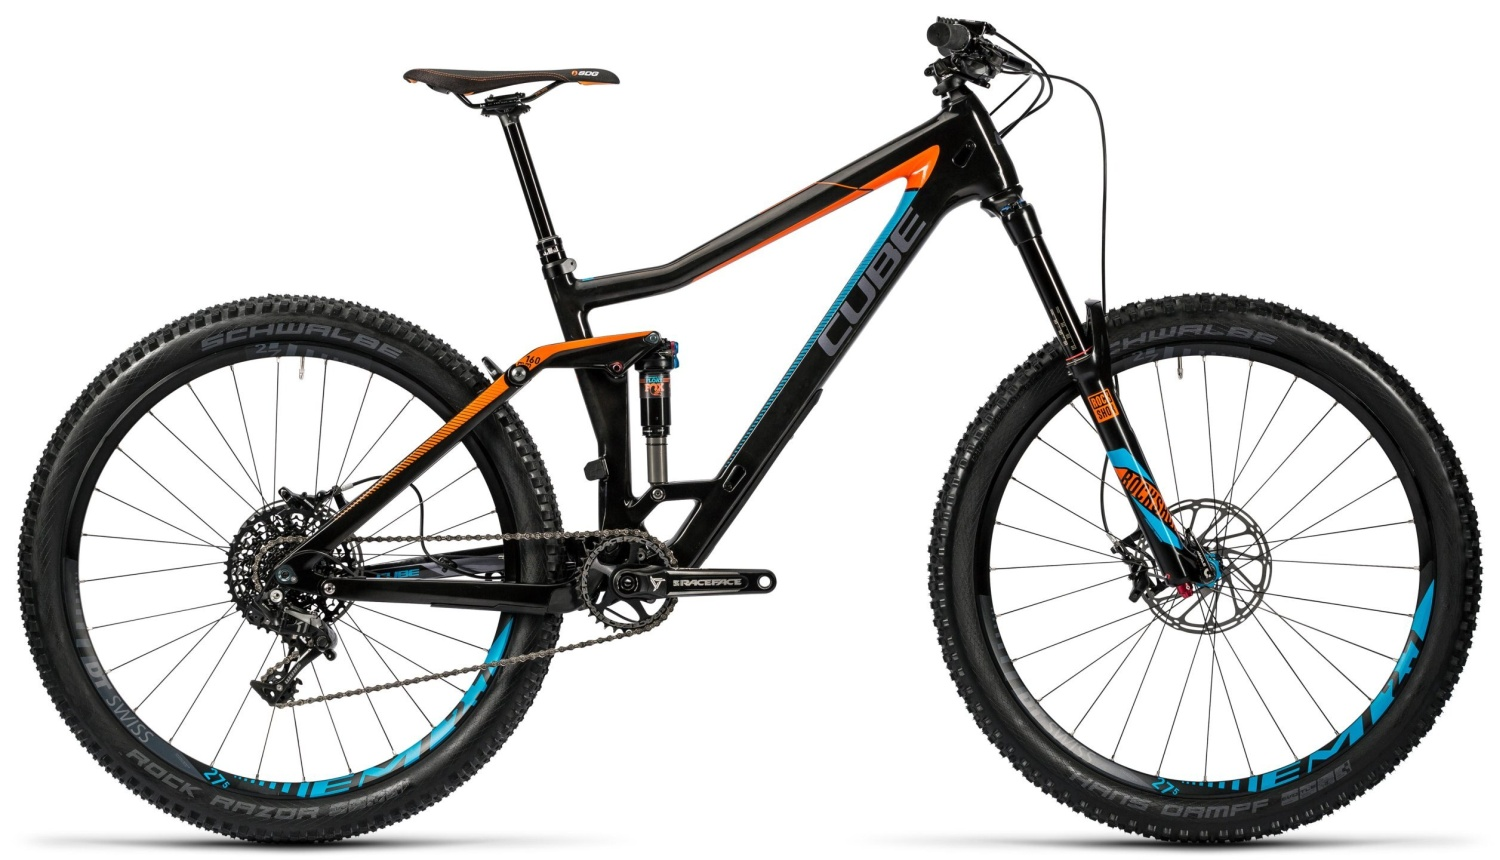 Cube Stereo 160 C:62 SL 27.5 carbon'n'flashorange 2016 16